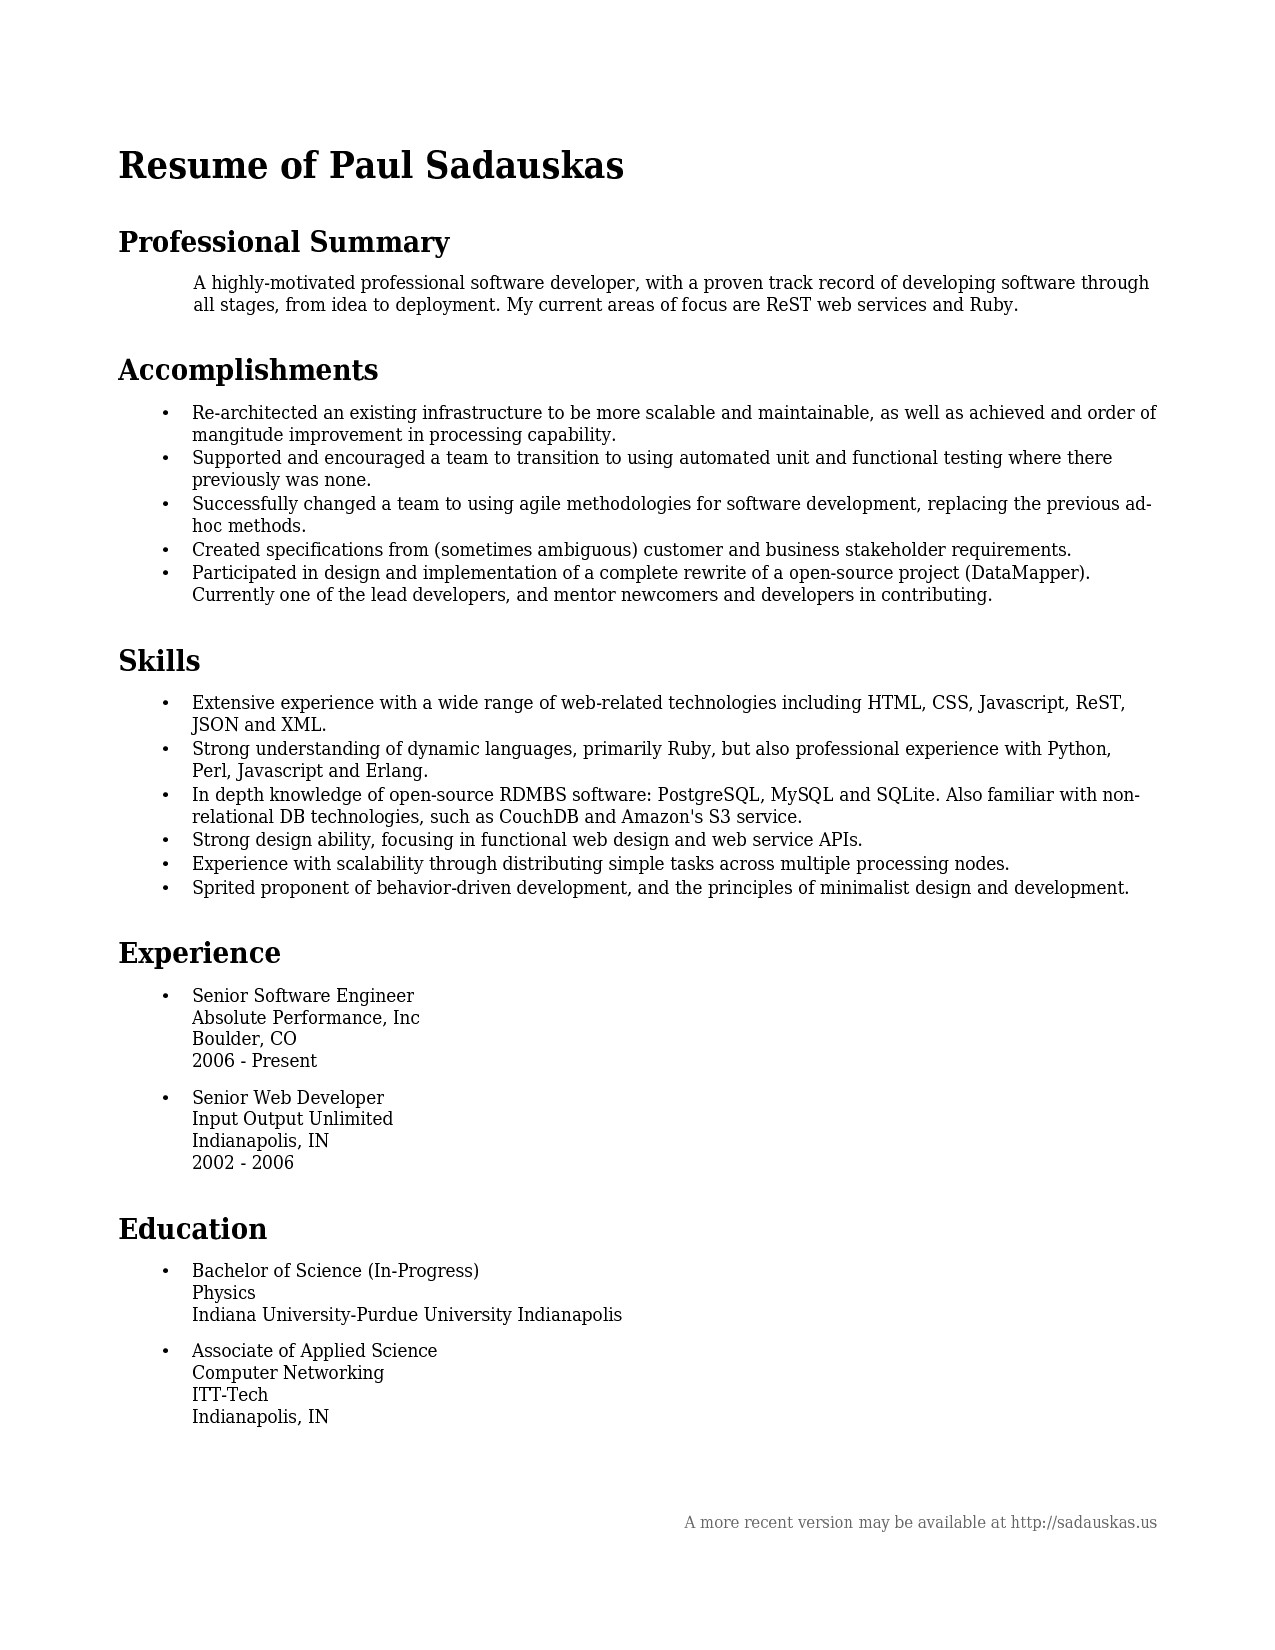 Web Developer Summary Resume - Resume Examples Professional Summary New Example Professional